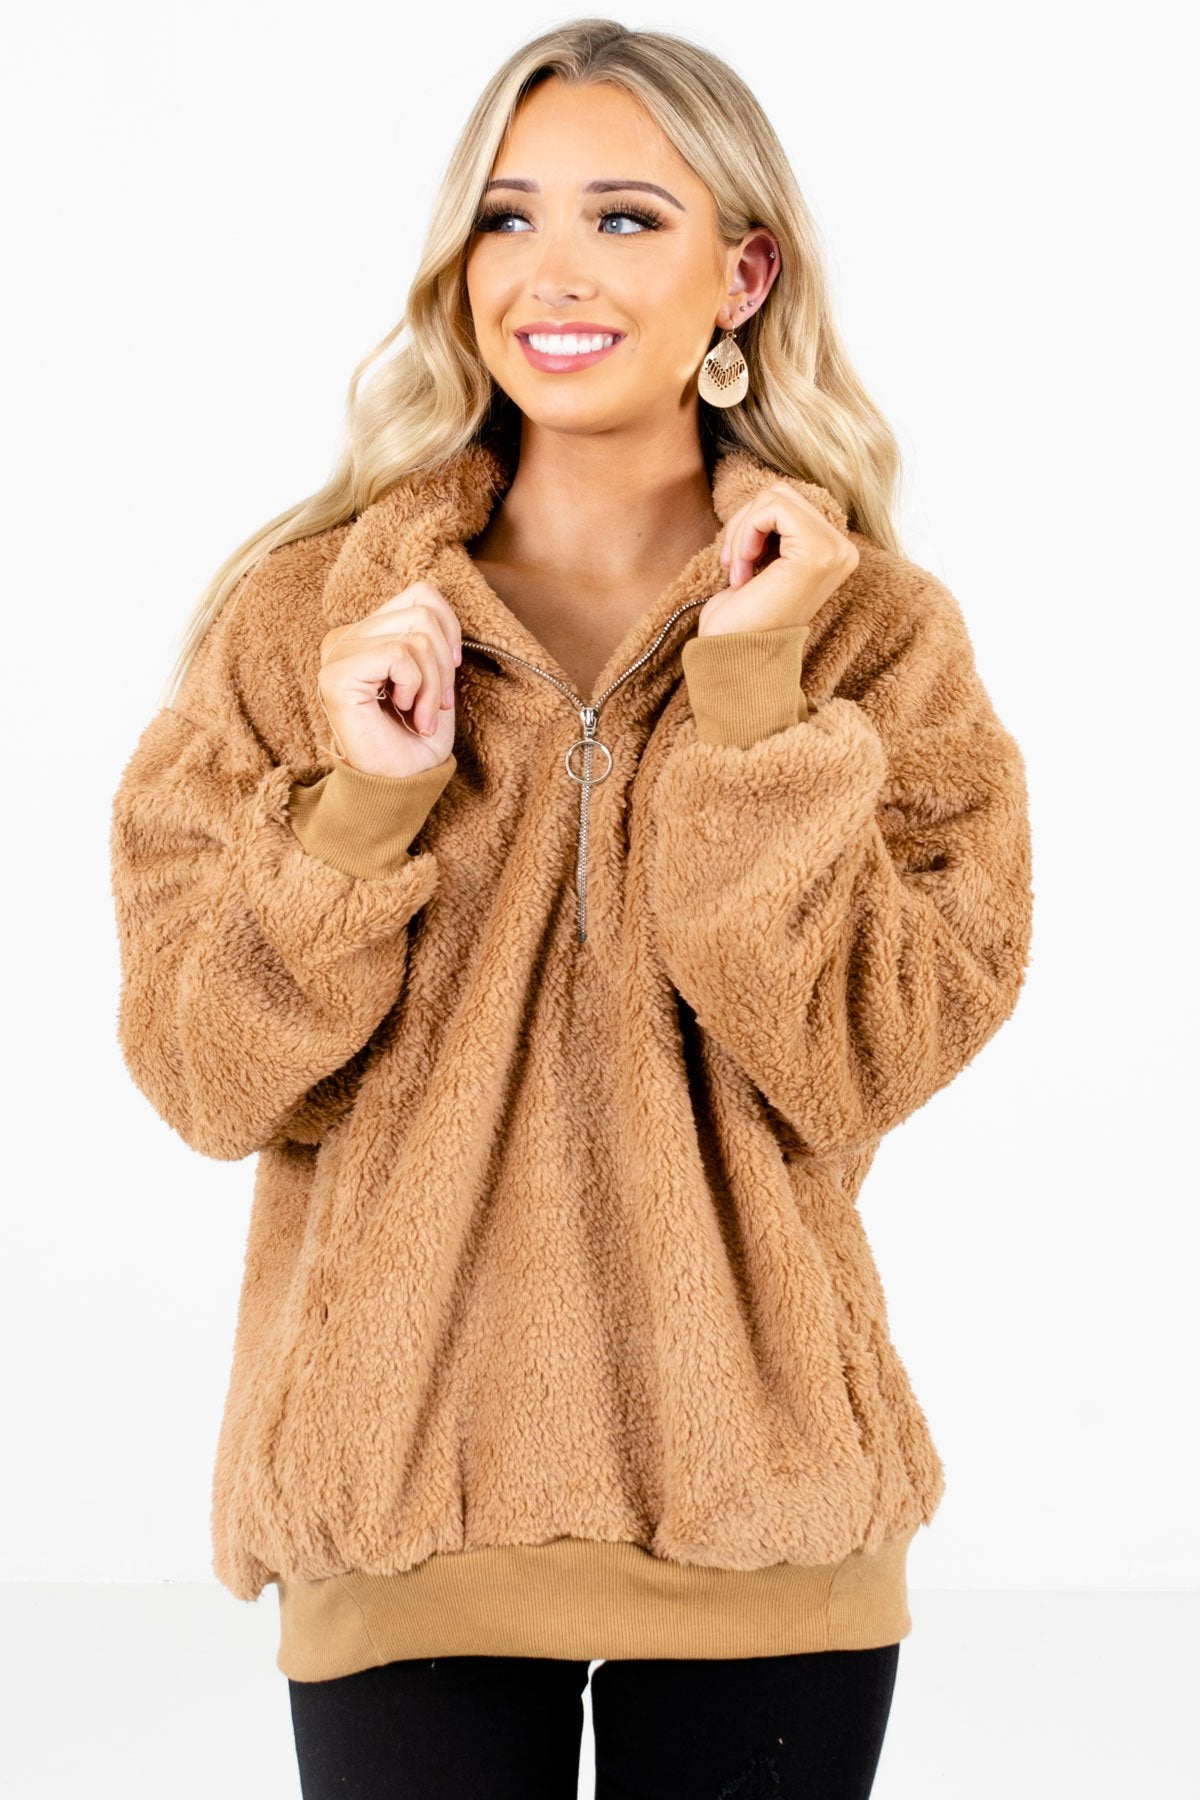 Tan Brown High-Quality Fuzzy Material Boutique Pullovers for Women